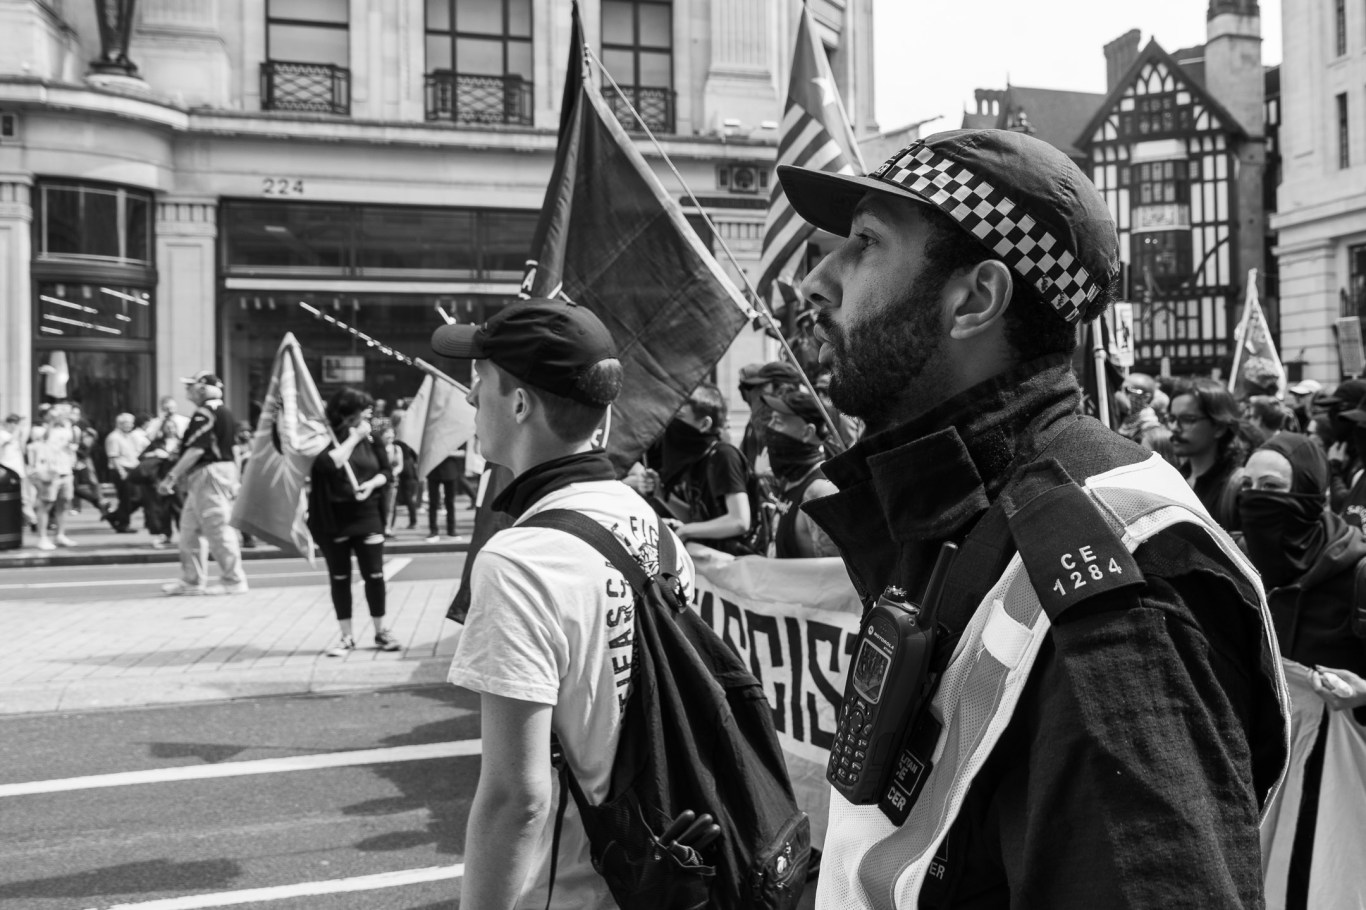 Police Manage Protest